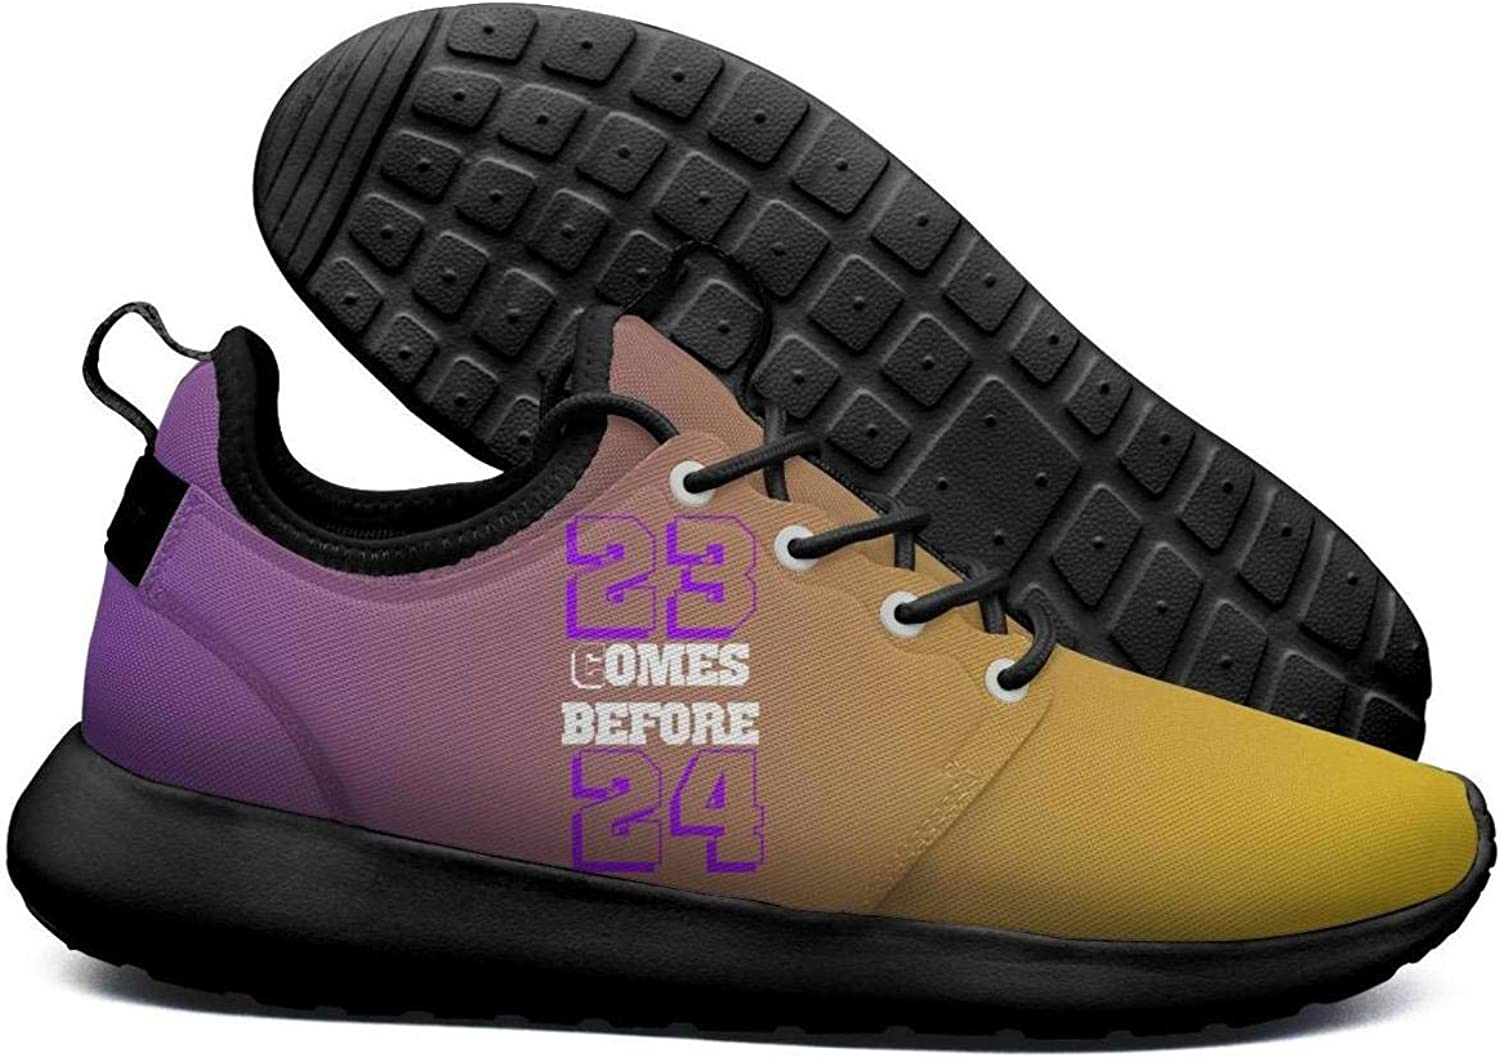 Womens Roshe Two Lightweight Purple 23 Comes beforce 24_labron Breathable Fashion Sneakers mesh shoes